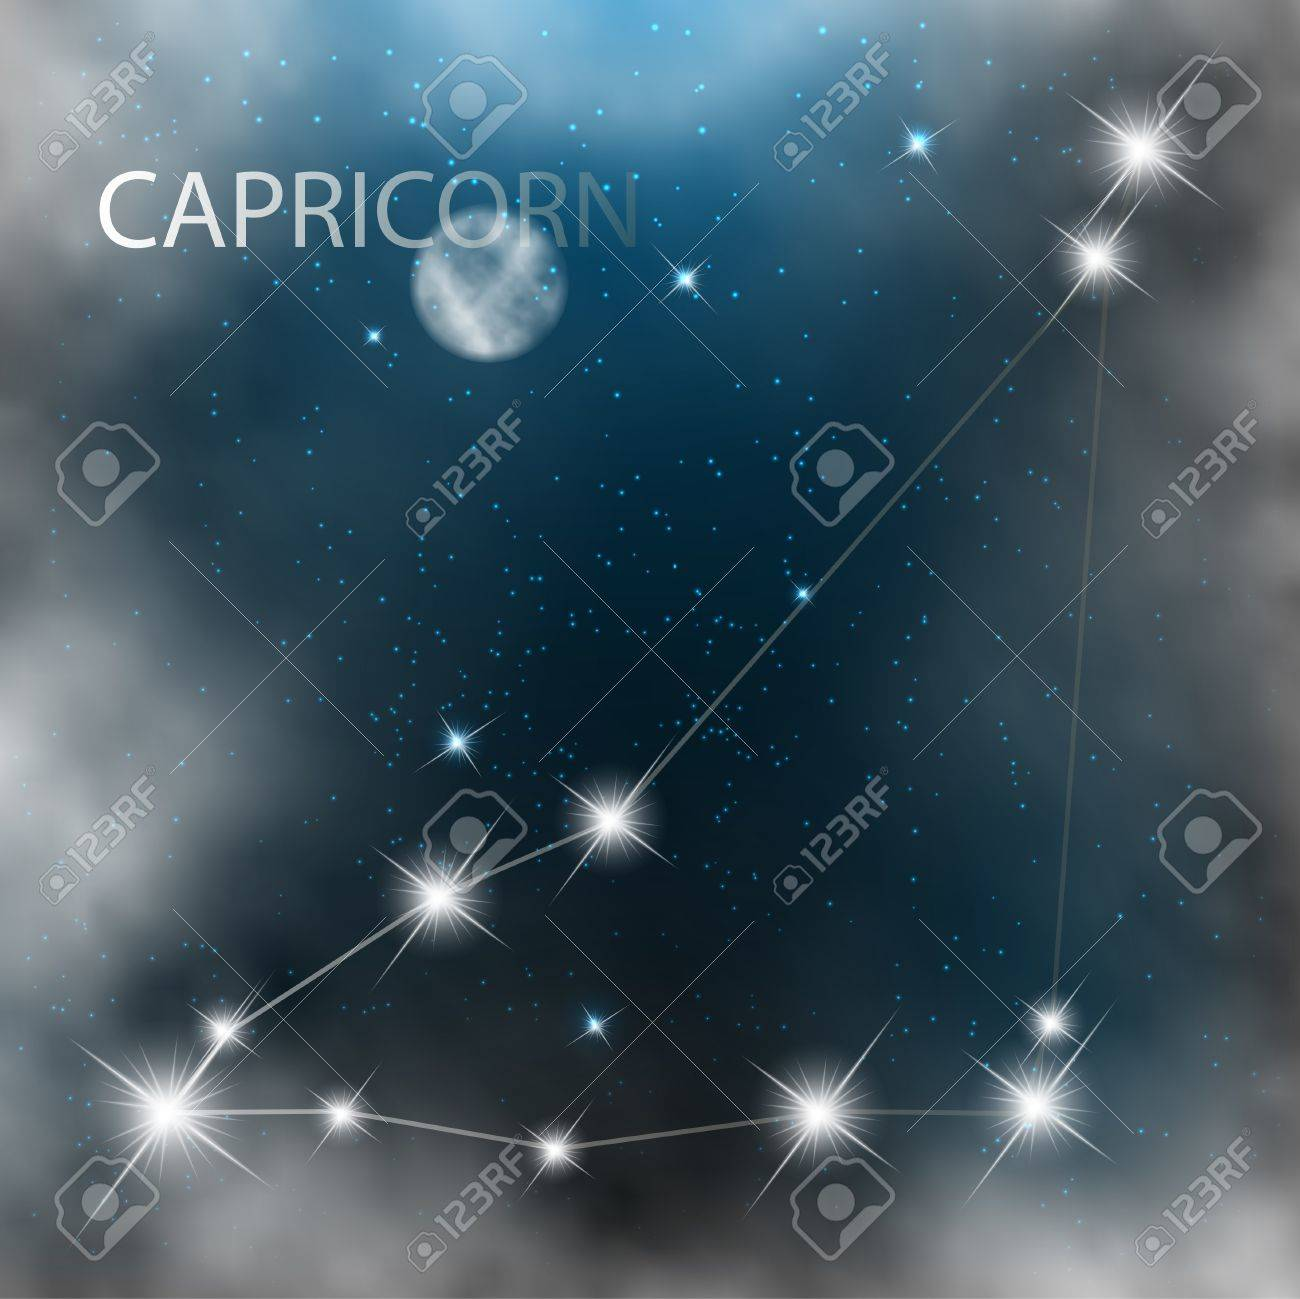 Capricorn  Zodiac sign bright stars in cosmos Stock Vector - 17559011